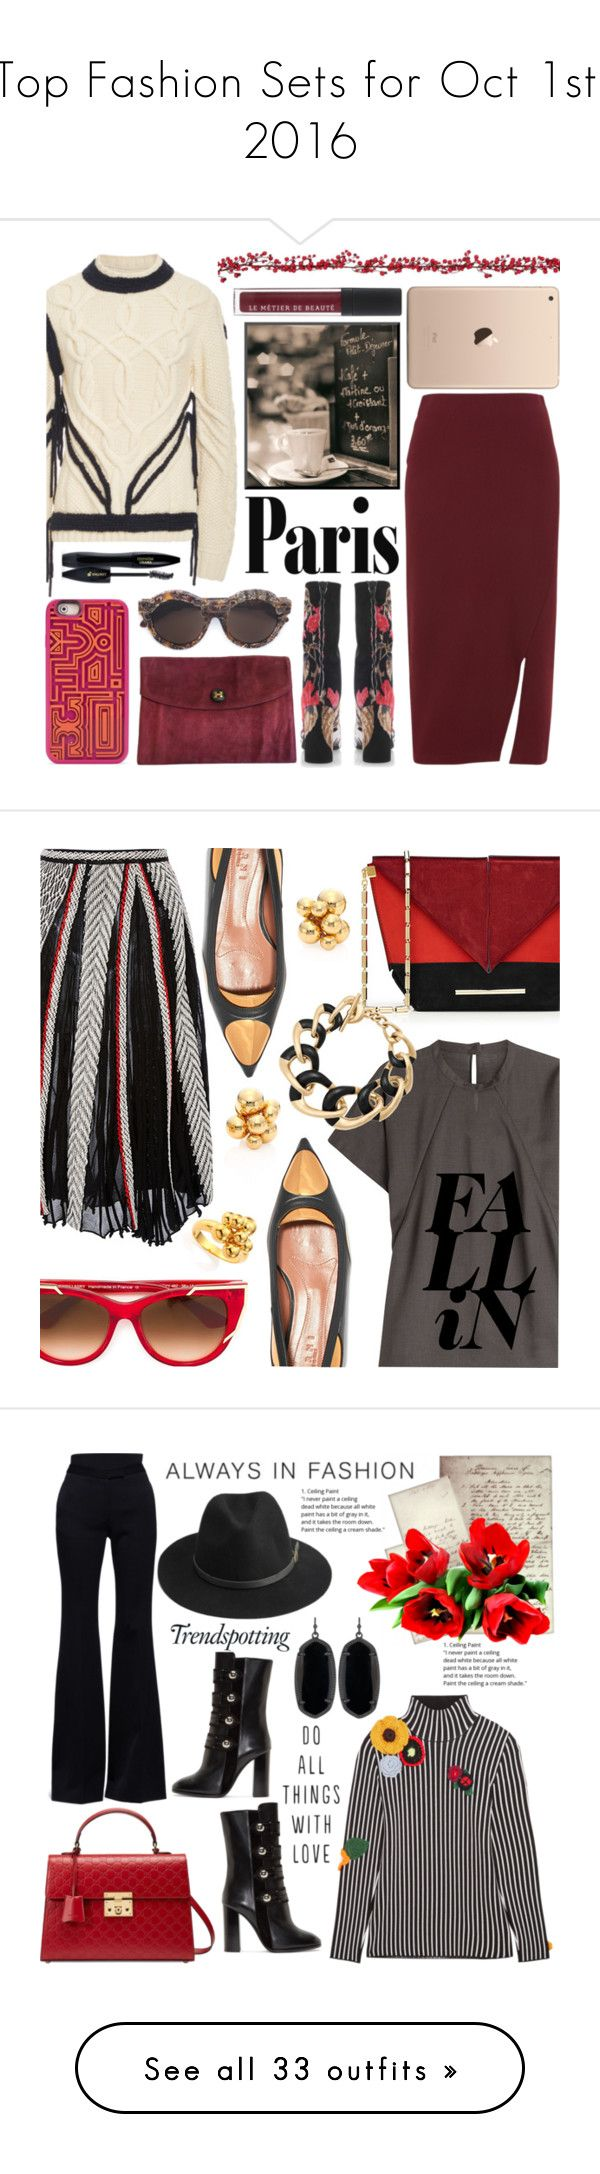 """""""Top Fashion Sets for Oct 1st, 2016"""" by polyvore ❤ liked on Polyvore featuring Tory Burch, Whistles, MSGM, ORLEY, Hermès, Kuboraum, Lancôme, Premier Decorations, Sweater and midiskirt"""